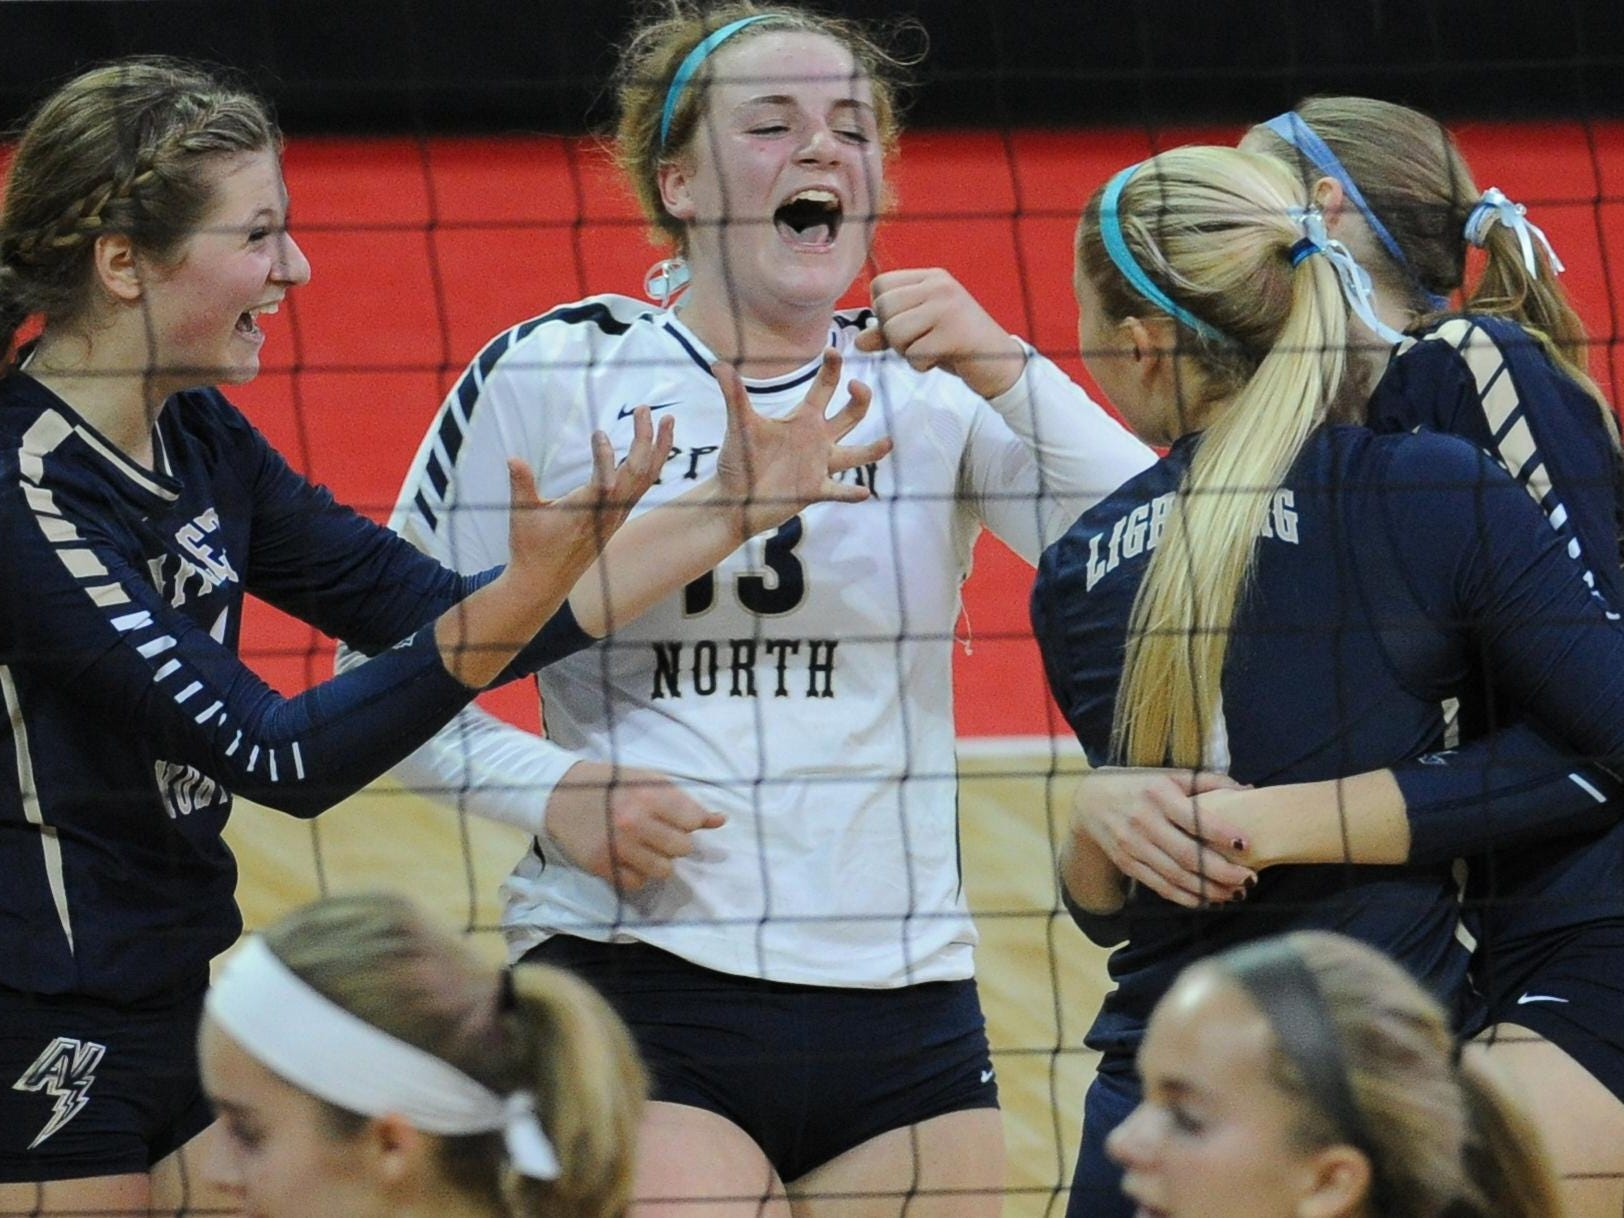 Appleton North players celebrate against Greendale during the WIAA Division 1 state tournament Thursday in Ashwaubenon.